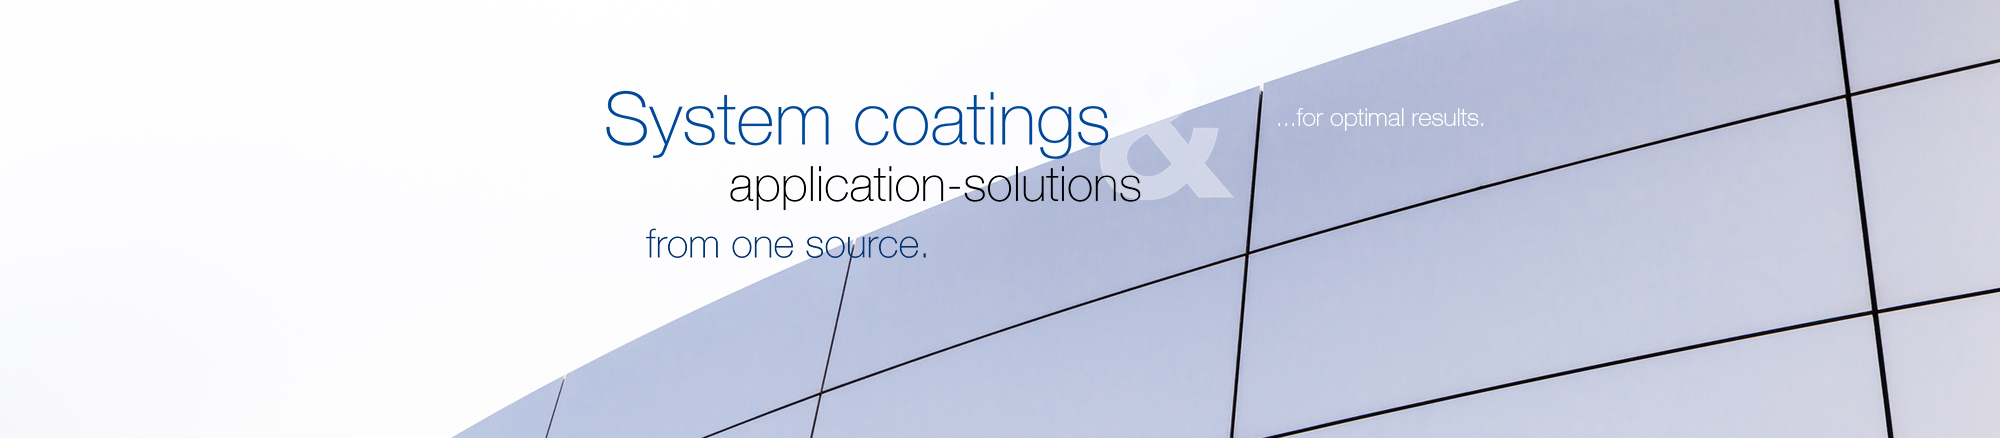 System coatings & application solutions from one source -for optimal results